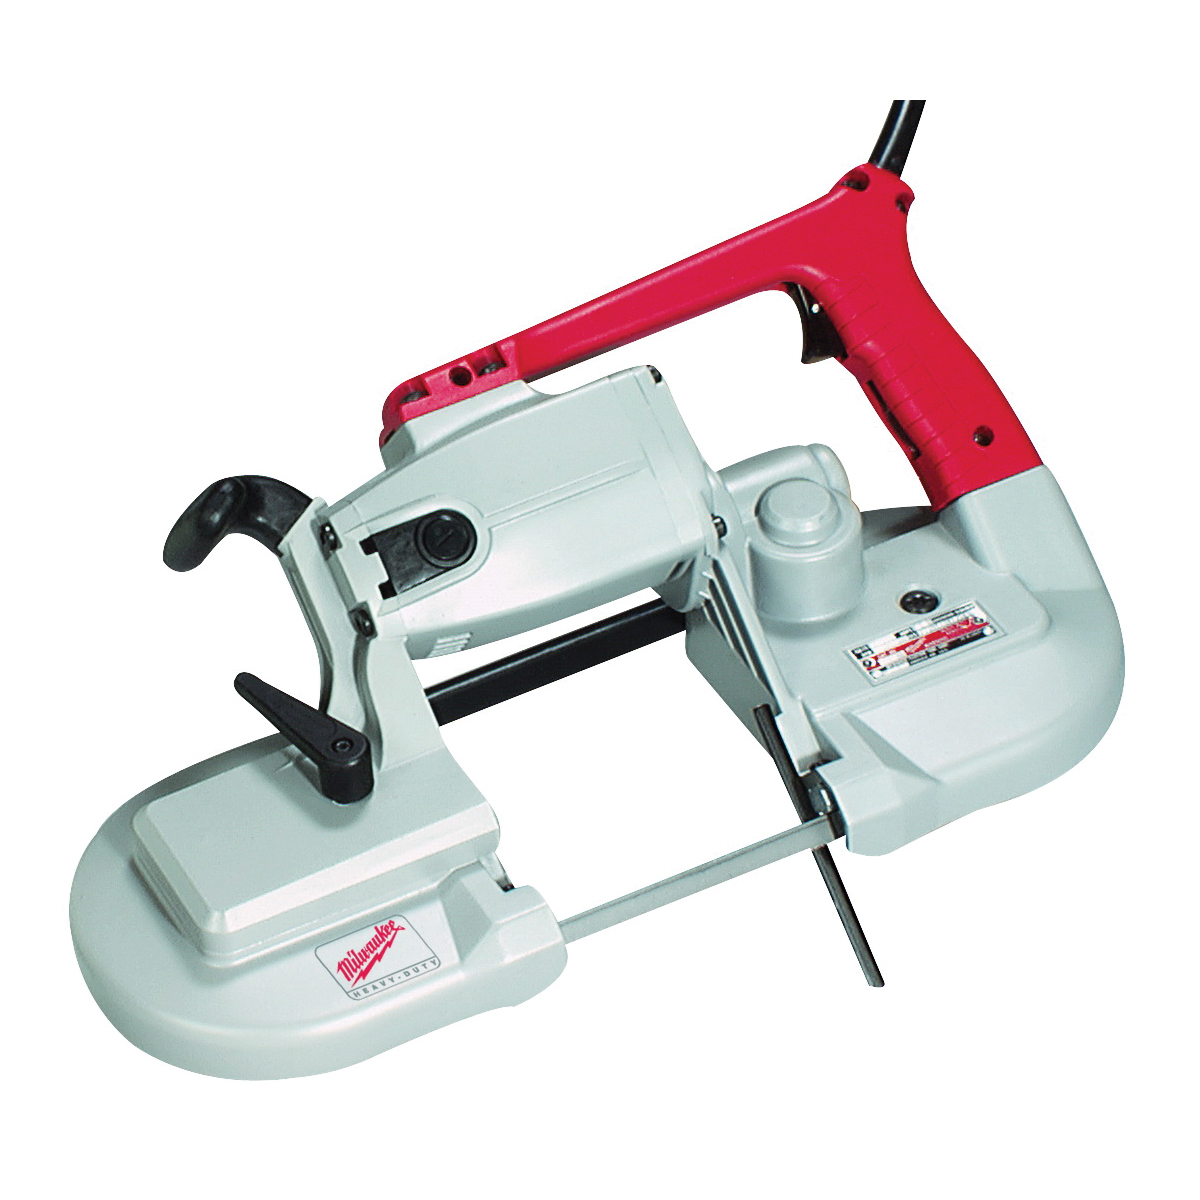 Picture of Milwaukee 6238-21 Band Saw, 5 x 5 in Rectangular, 5 in Round Cutting Capacity, 120 V